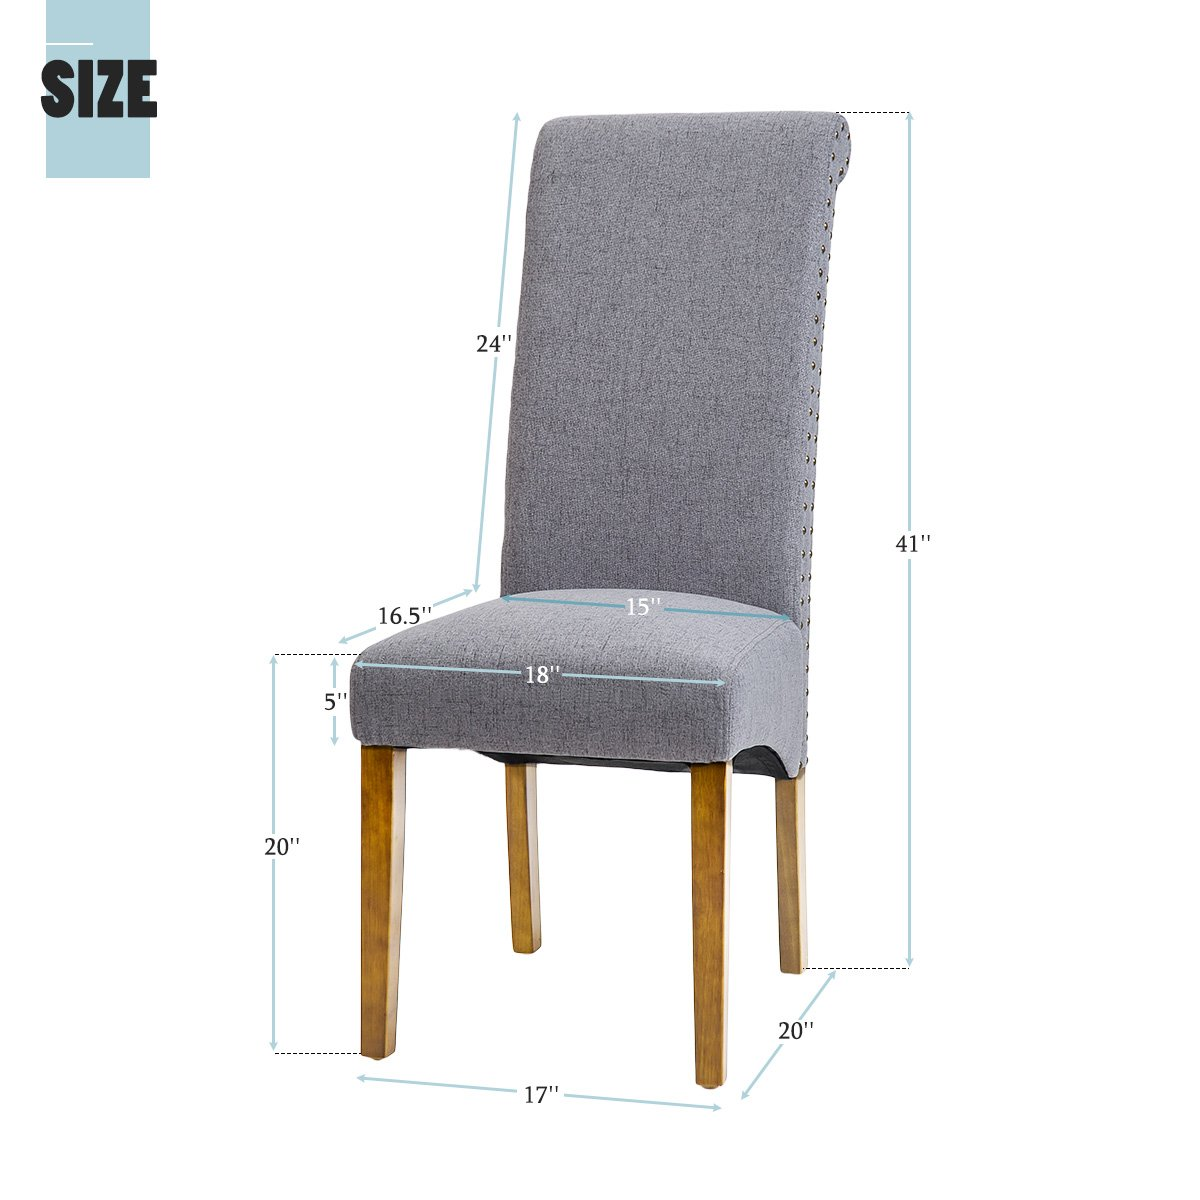 Merax Dining Chairs Set of 2 Fabric Padded Side Chair with Solid Wood Legs, Nailed Trim(Grey) by Merax (Image #6)